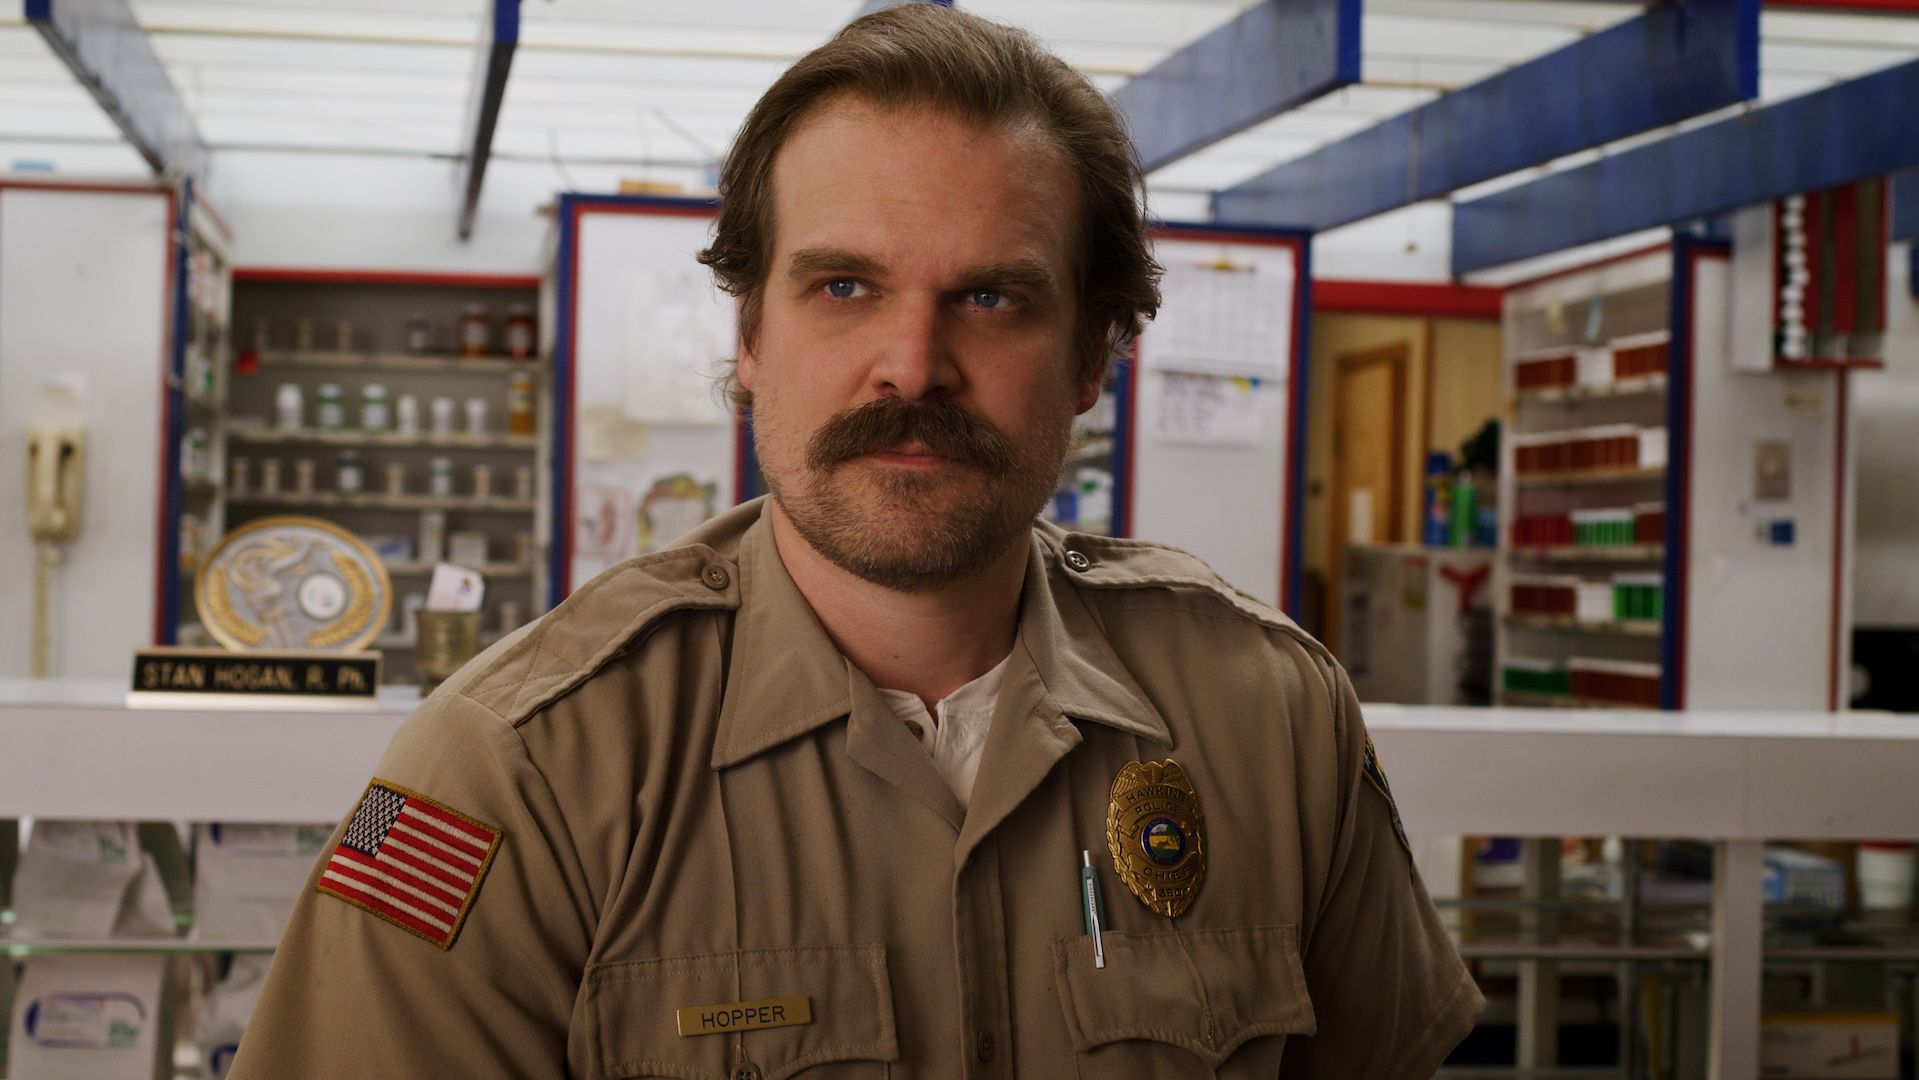 We Need To Talk About Hopper S Rage Problem In Stranger Things 3